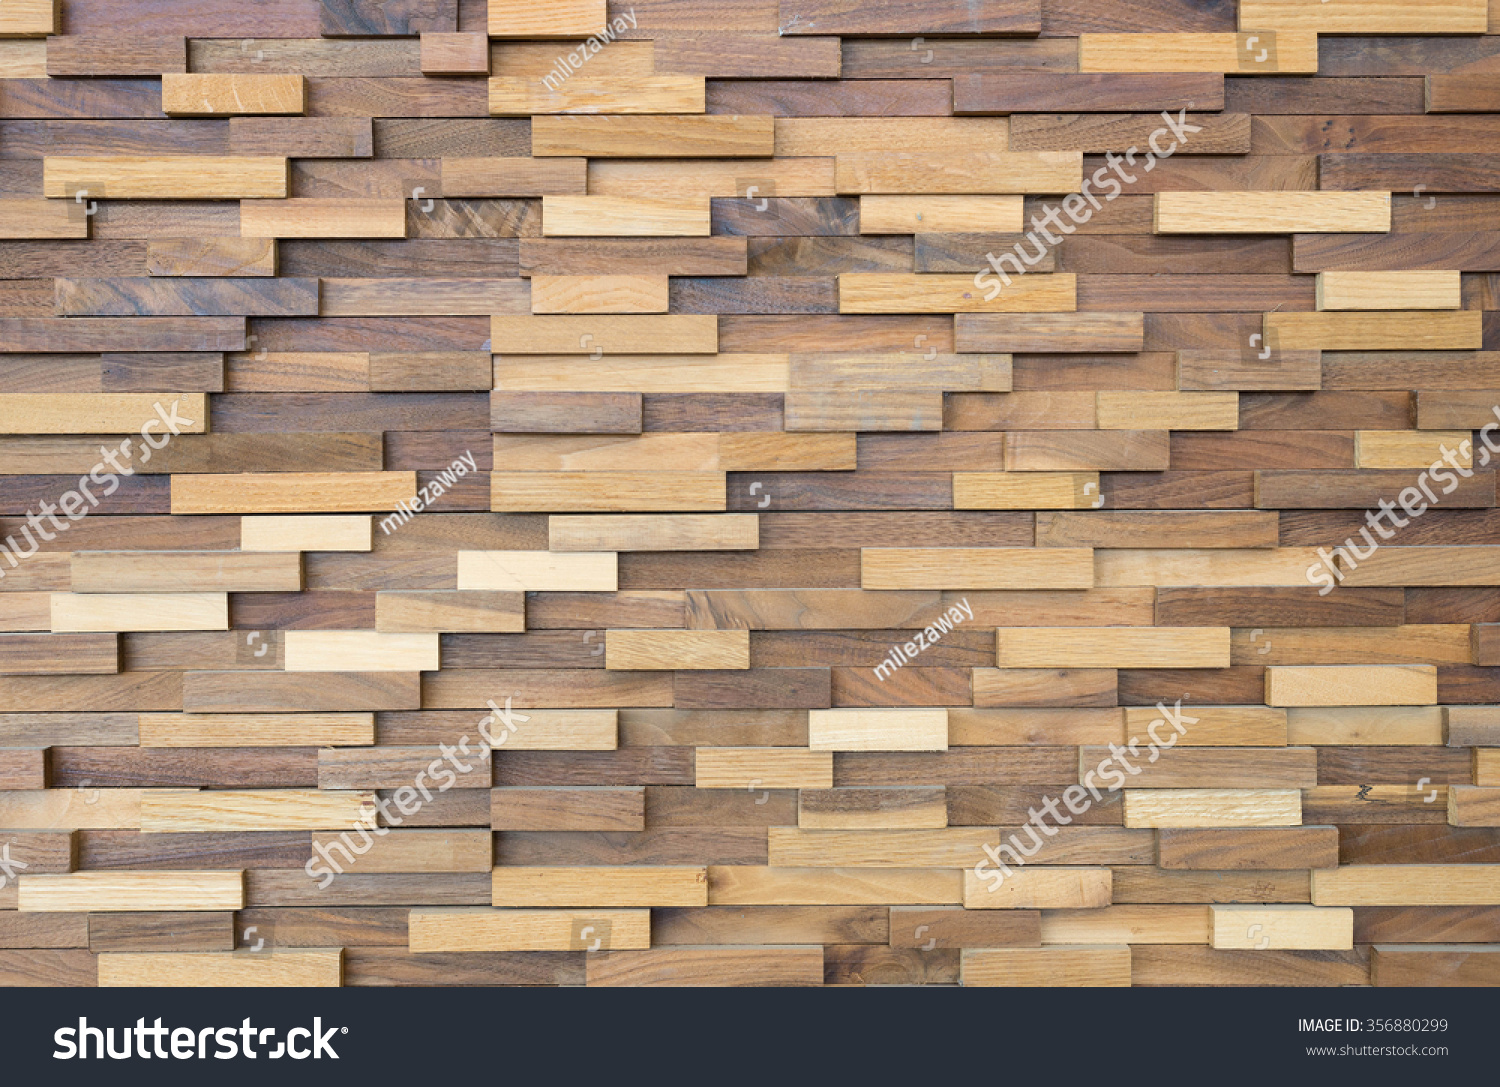 Exposed wooden wall exterior patchwork raw fotka 356880299 shutterstock - Exterior textured paint for wood pict ...